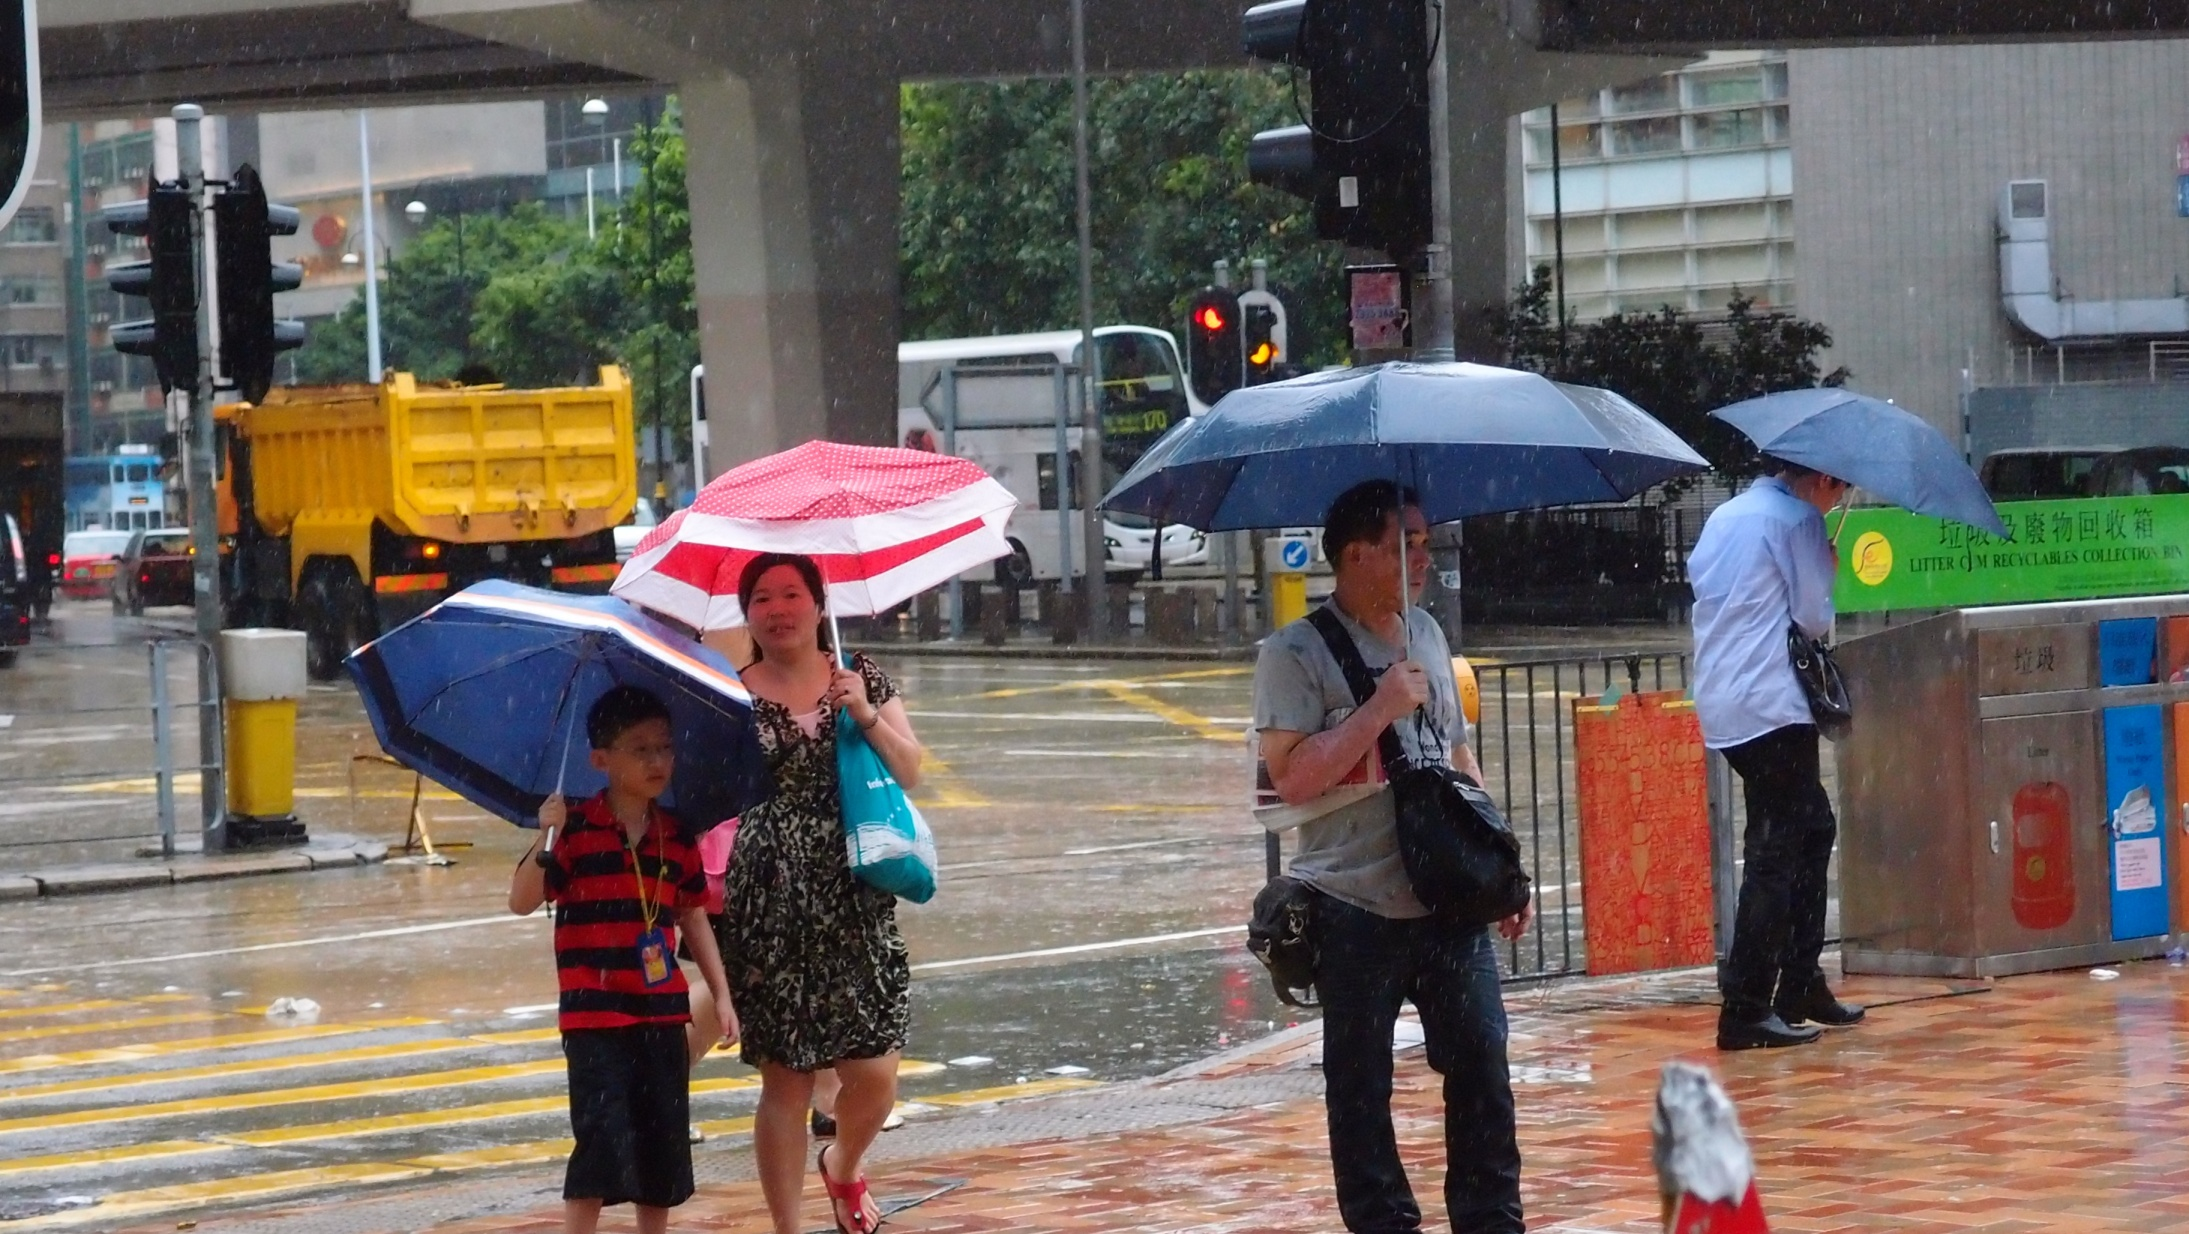 Most kids like making a splash when it rains, not this studious young fellow